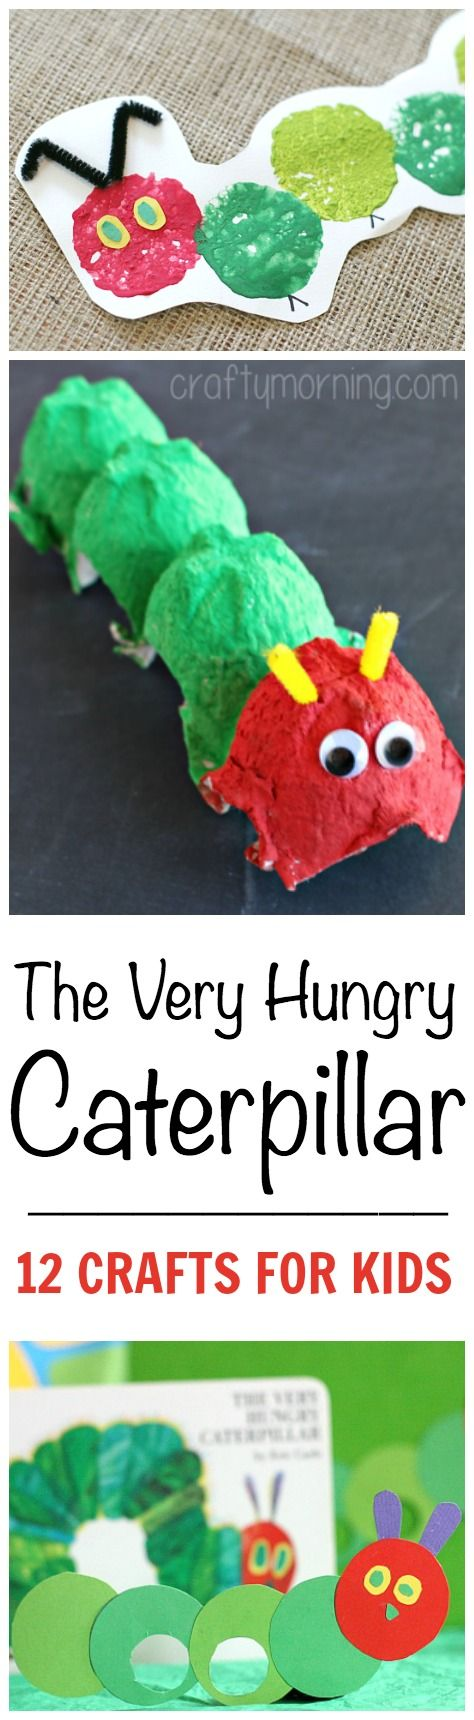 DIY Craft: The Very Hungry Caterpillar themed crafts and activities for kids!